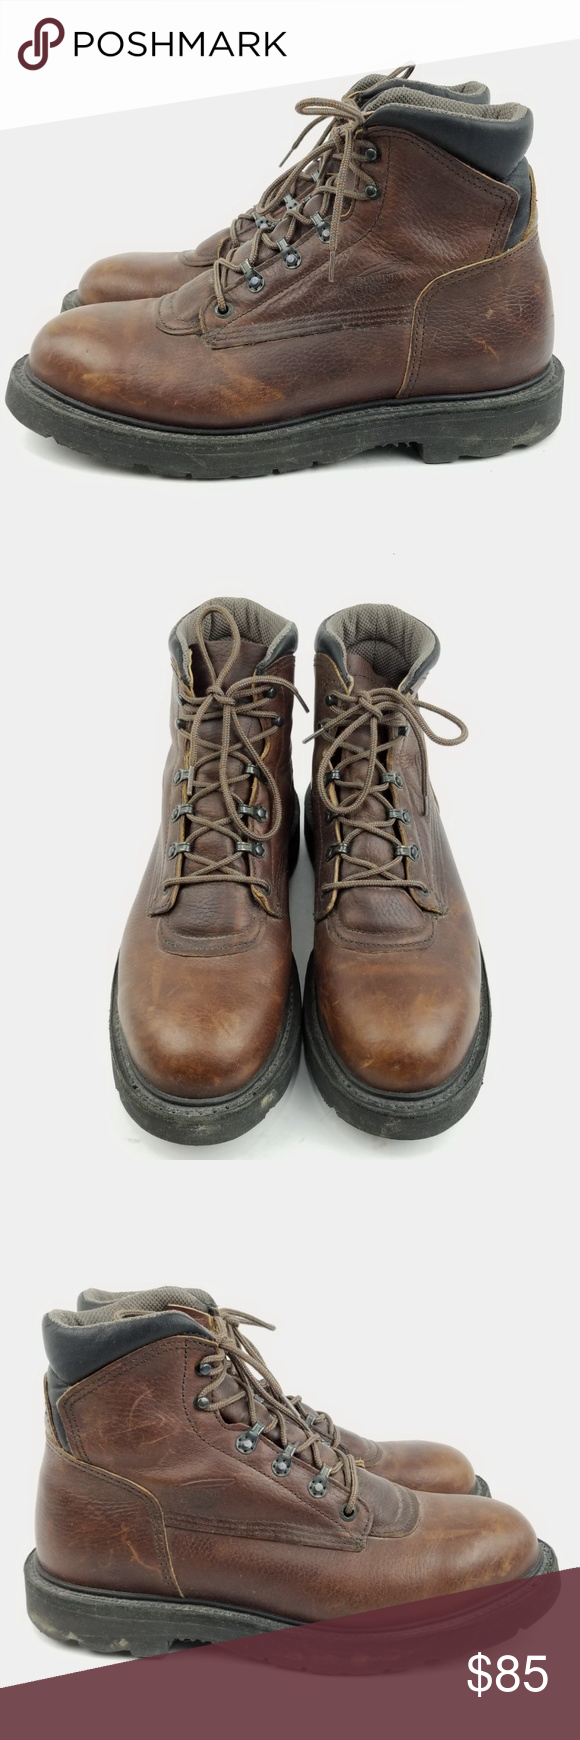 RED WING EH TruWelt Brown Boots 9.5 D